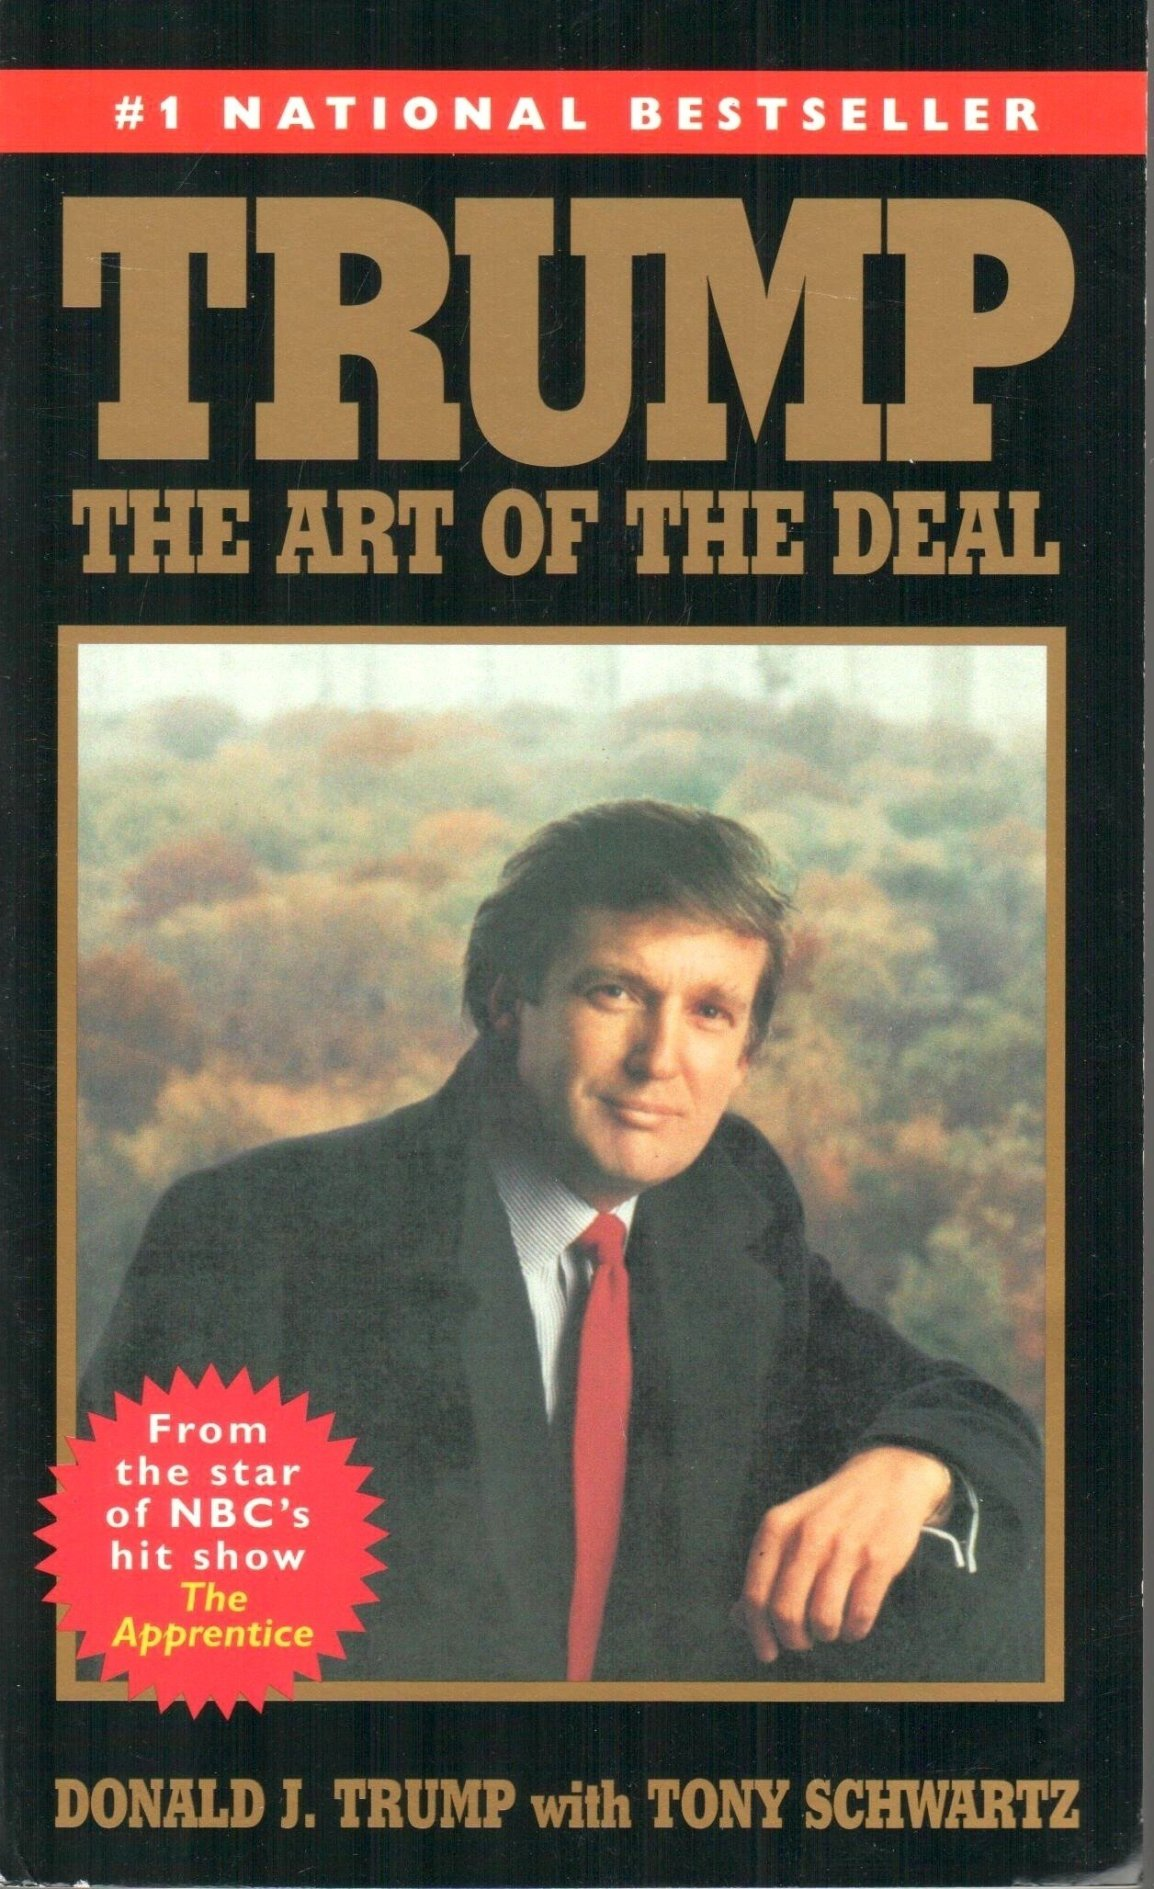 The Art of theDeal